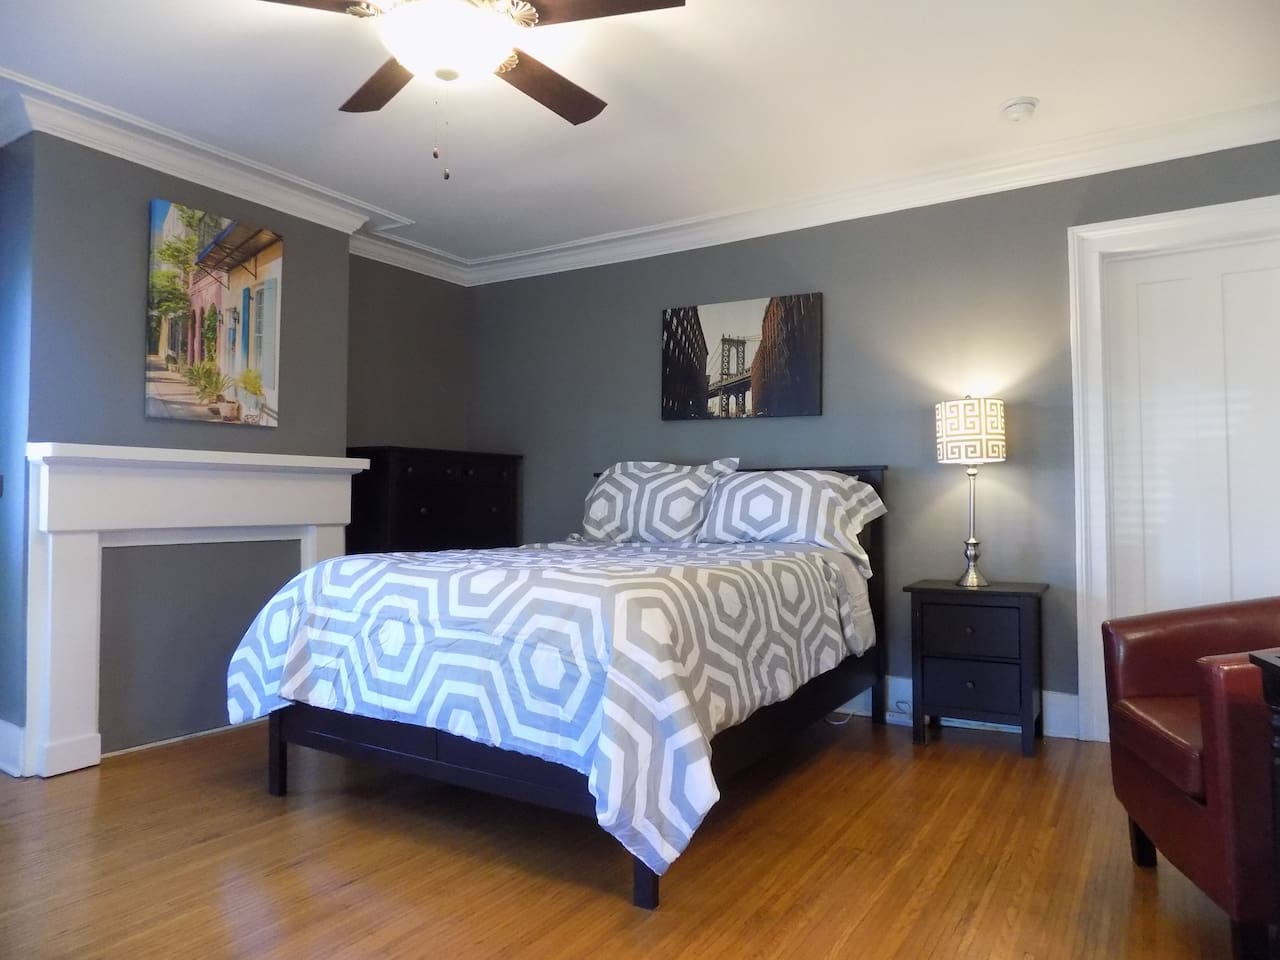 Comfortable furnishings including a Queen bed with linens.